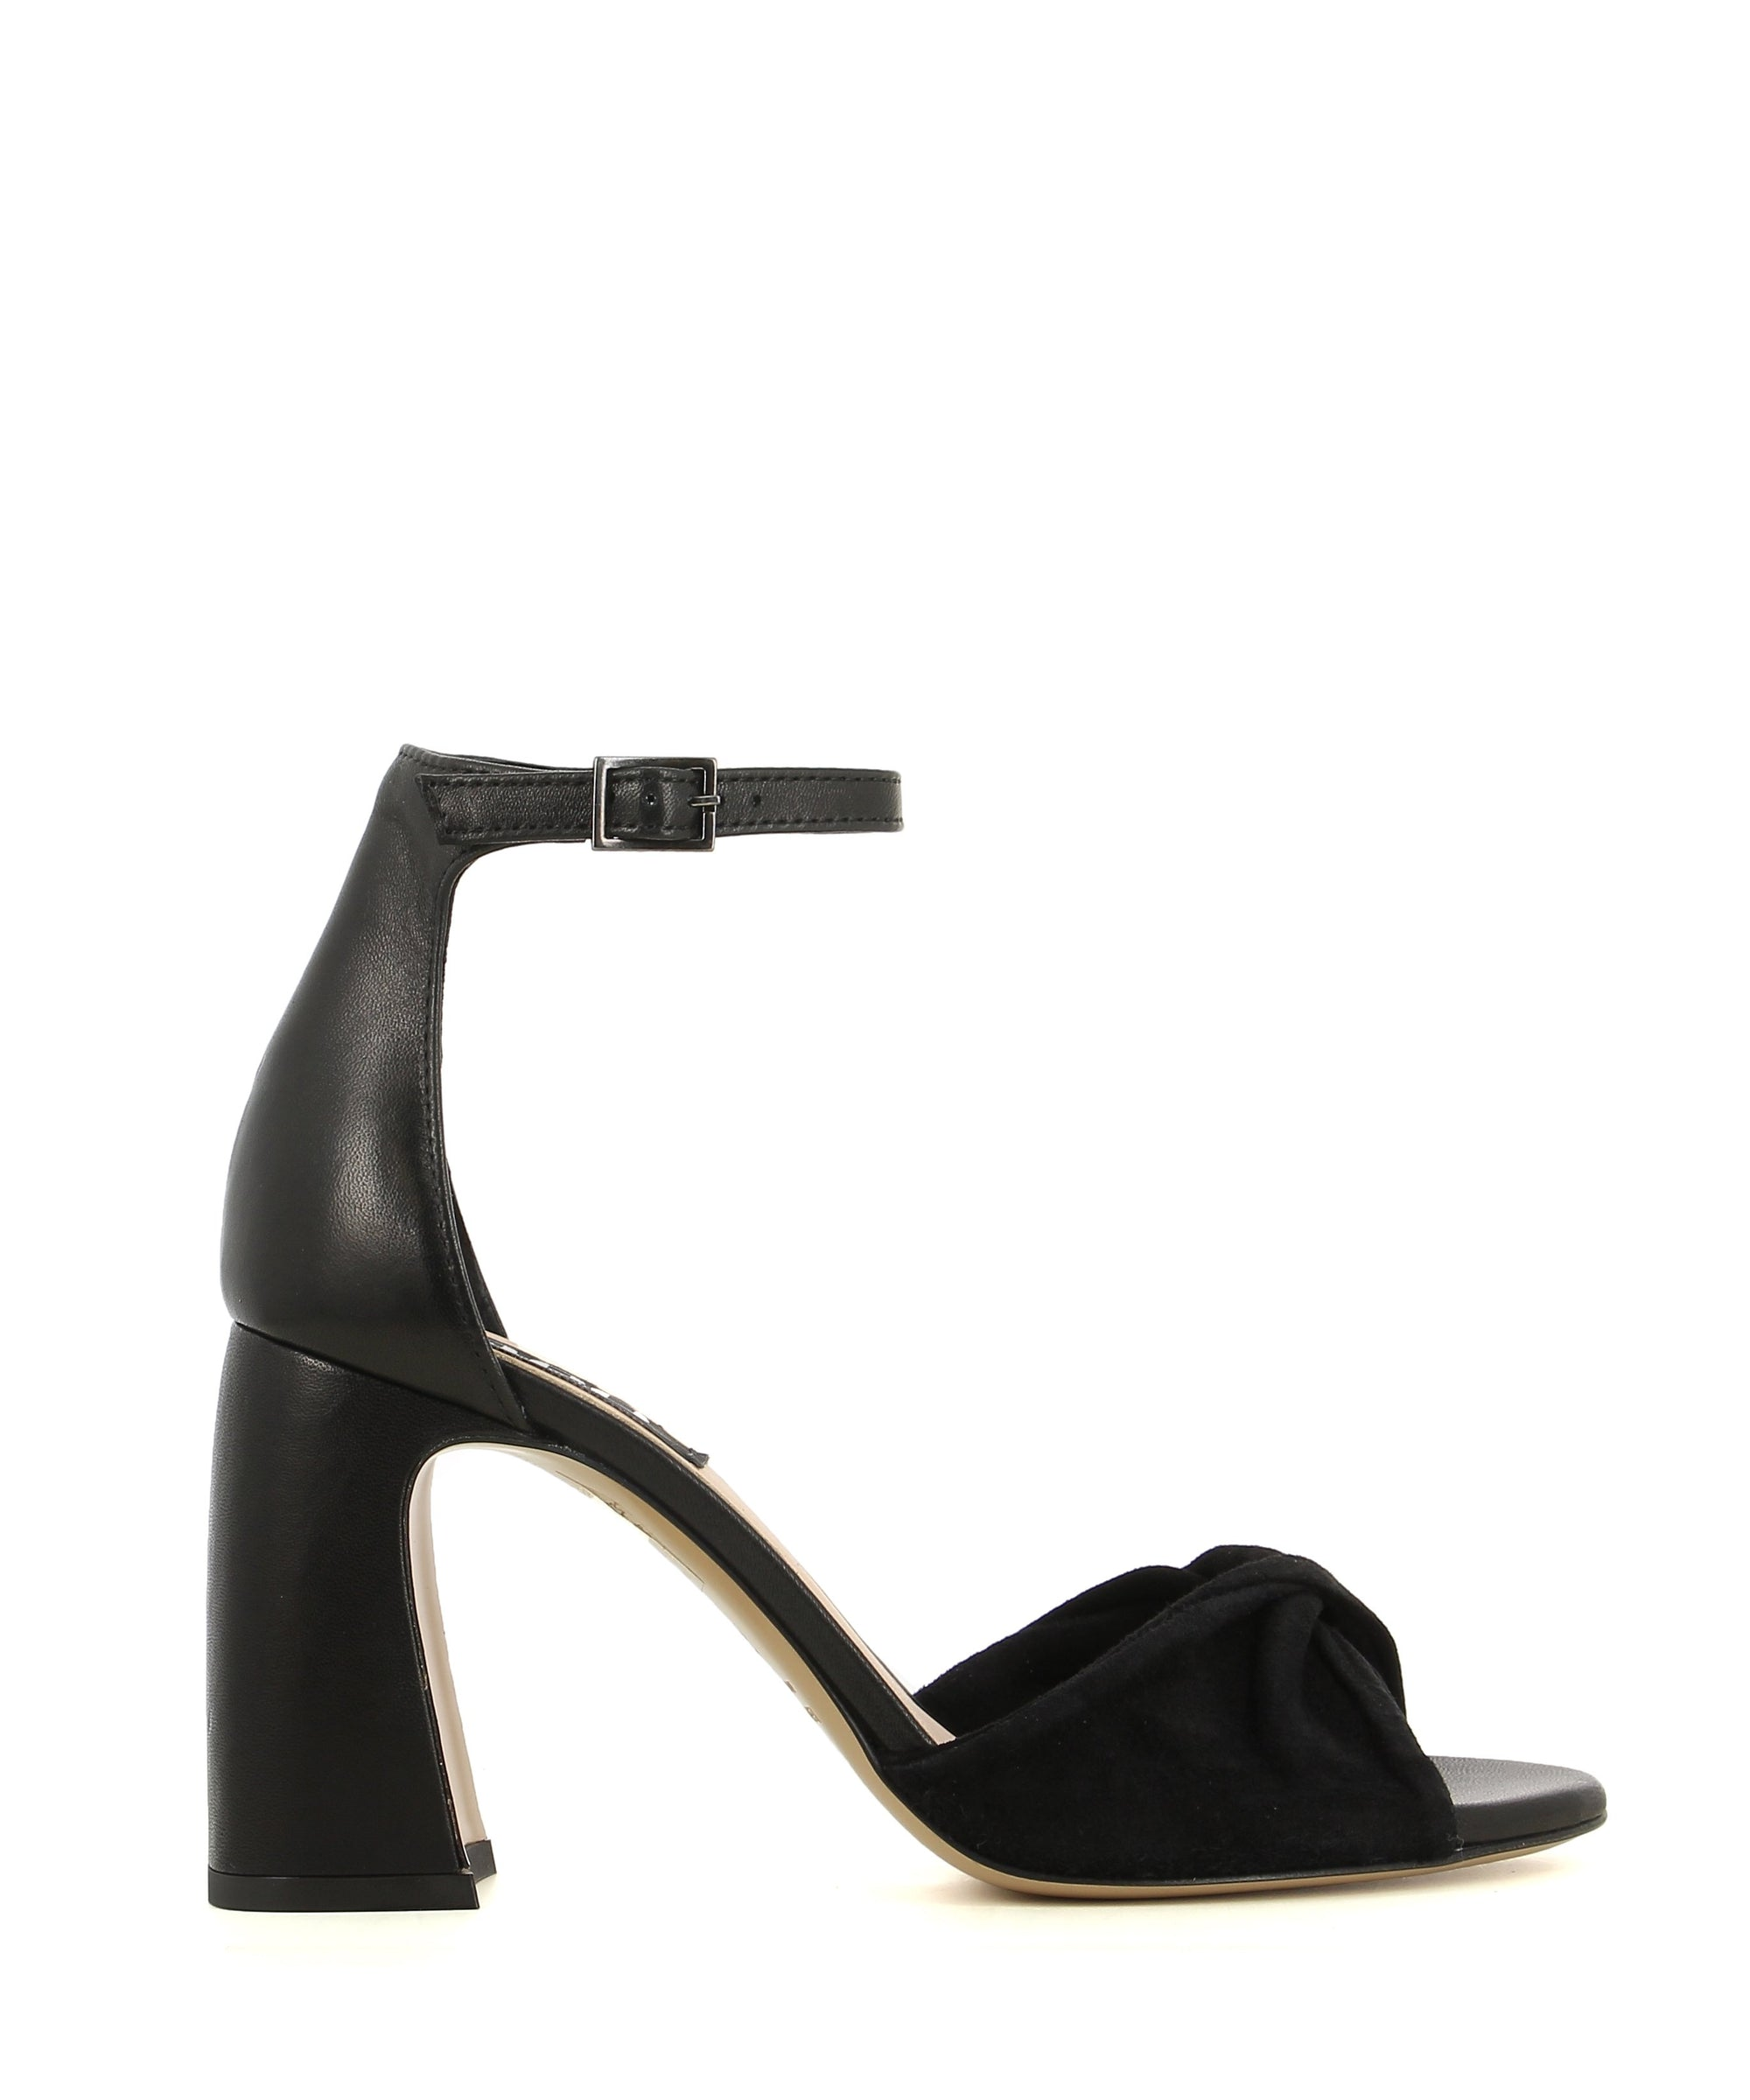 A black leather heeled sandal by Neo. The 'FR-Alyssa6' has an ankle strap with a buckle fastening and features a twisted suede upper, an architectural leather heel and an almond shaped toe.